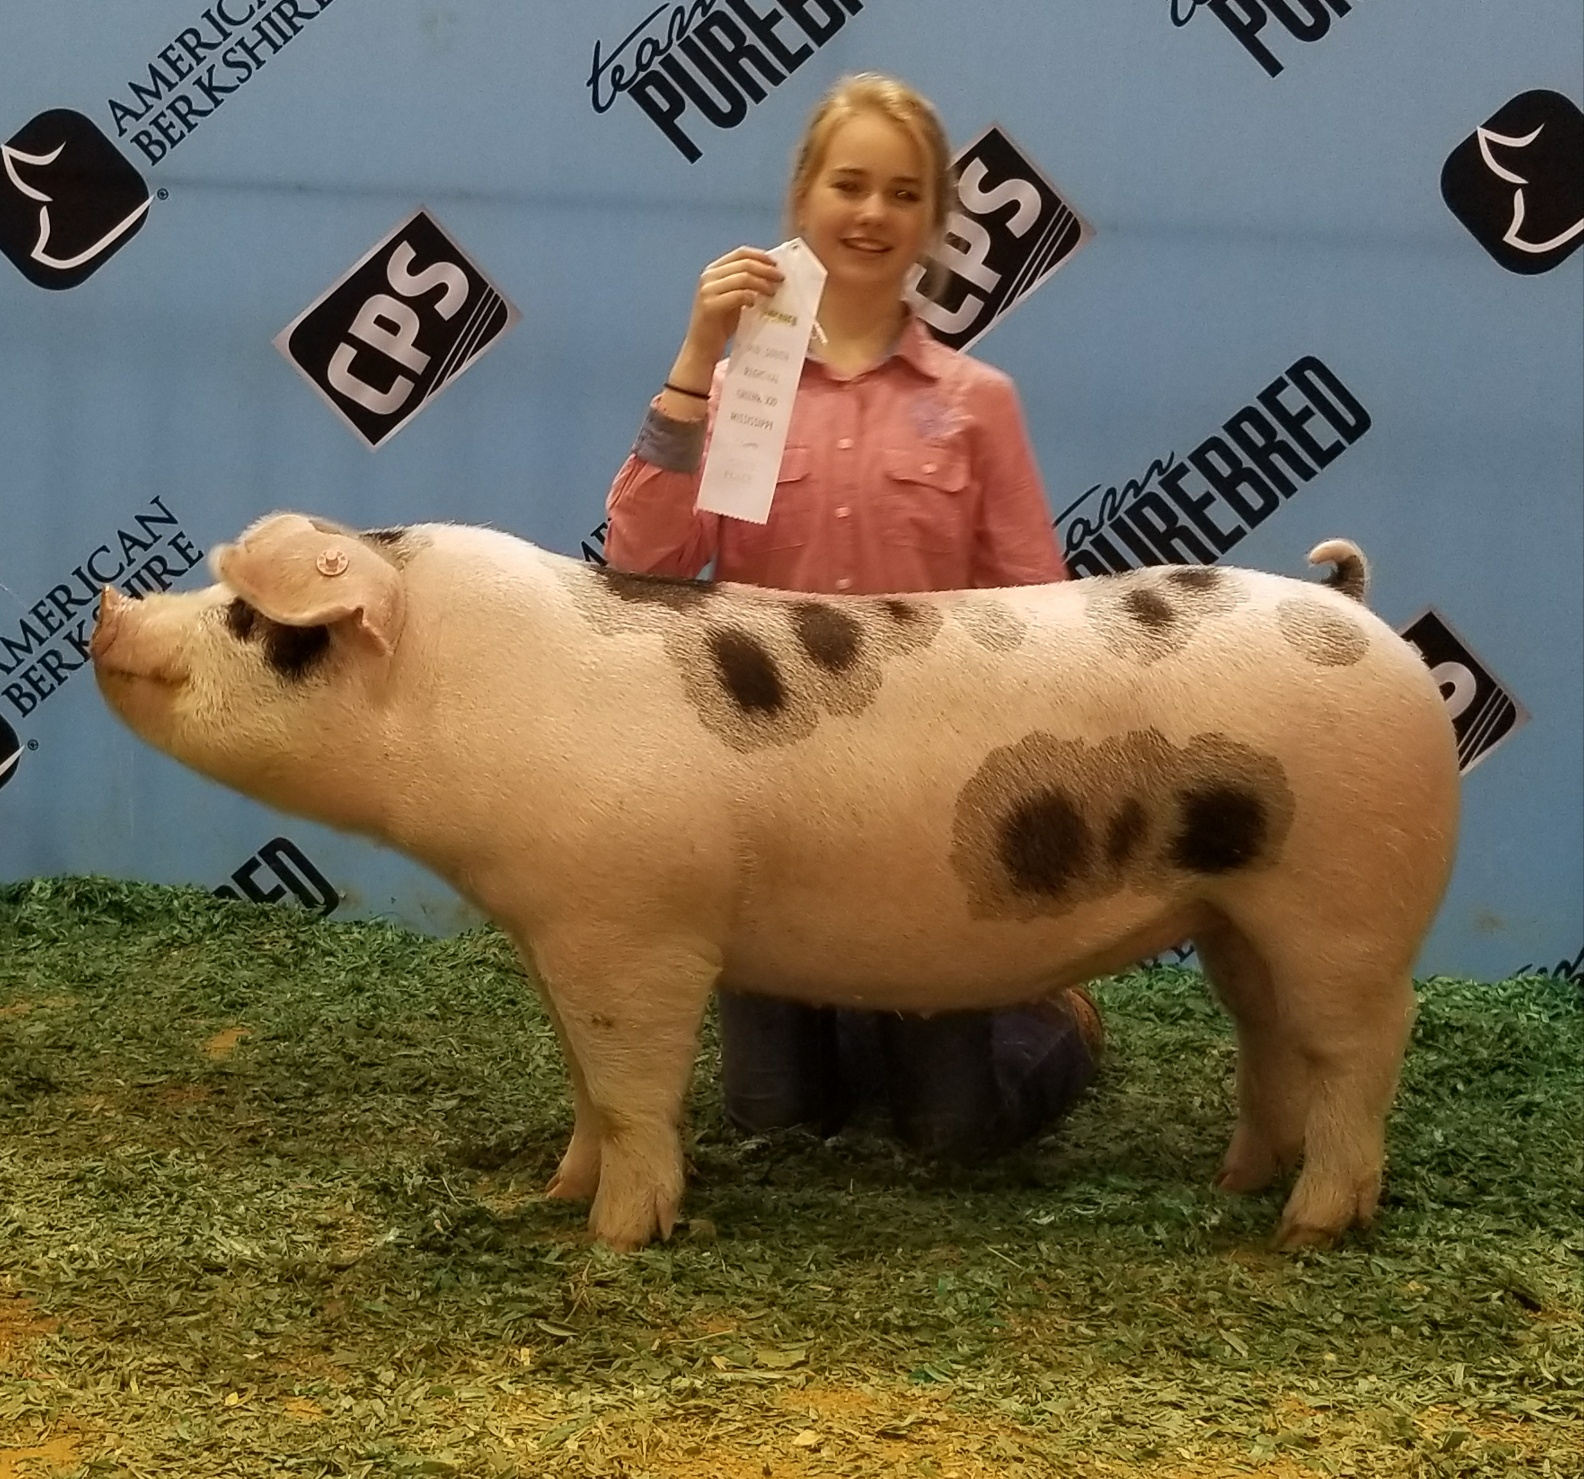 Hannah Sanders 2018 Mid-South Team Purebred Show Greenwood, MS 3rd in Spot Gilt Class